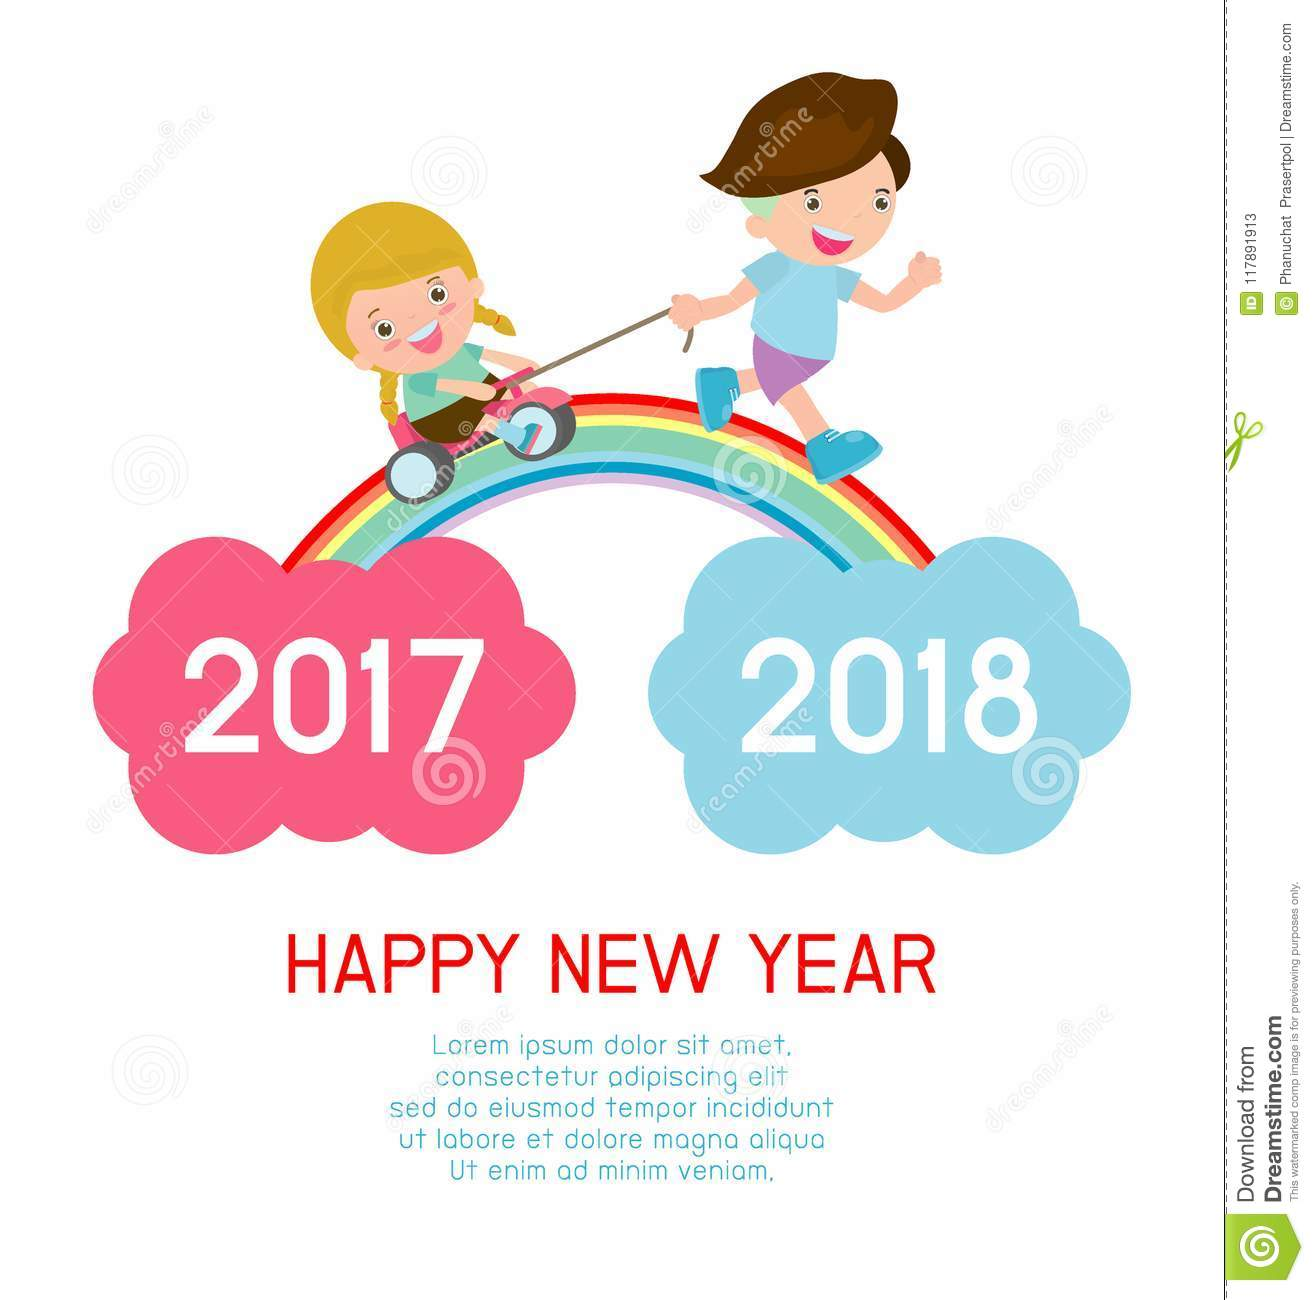 happy new year kids background children running on the rainbow between 2017 and 2018